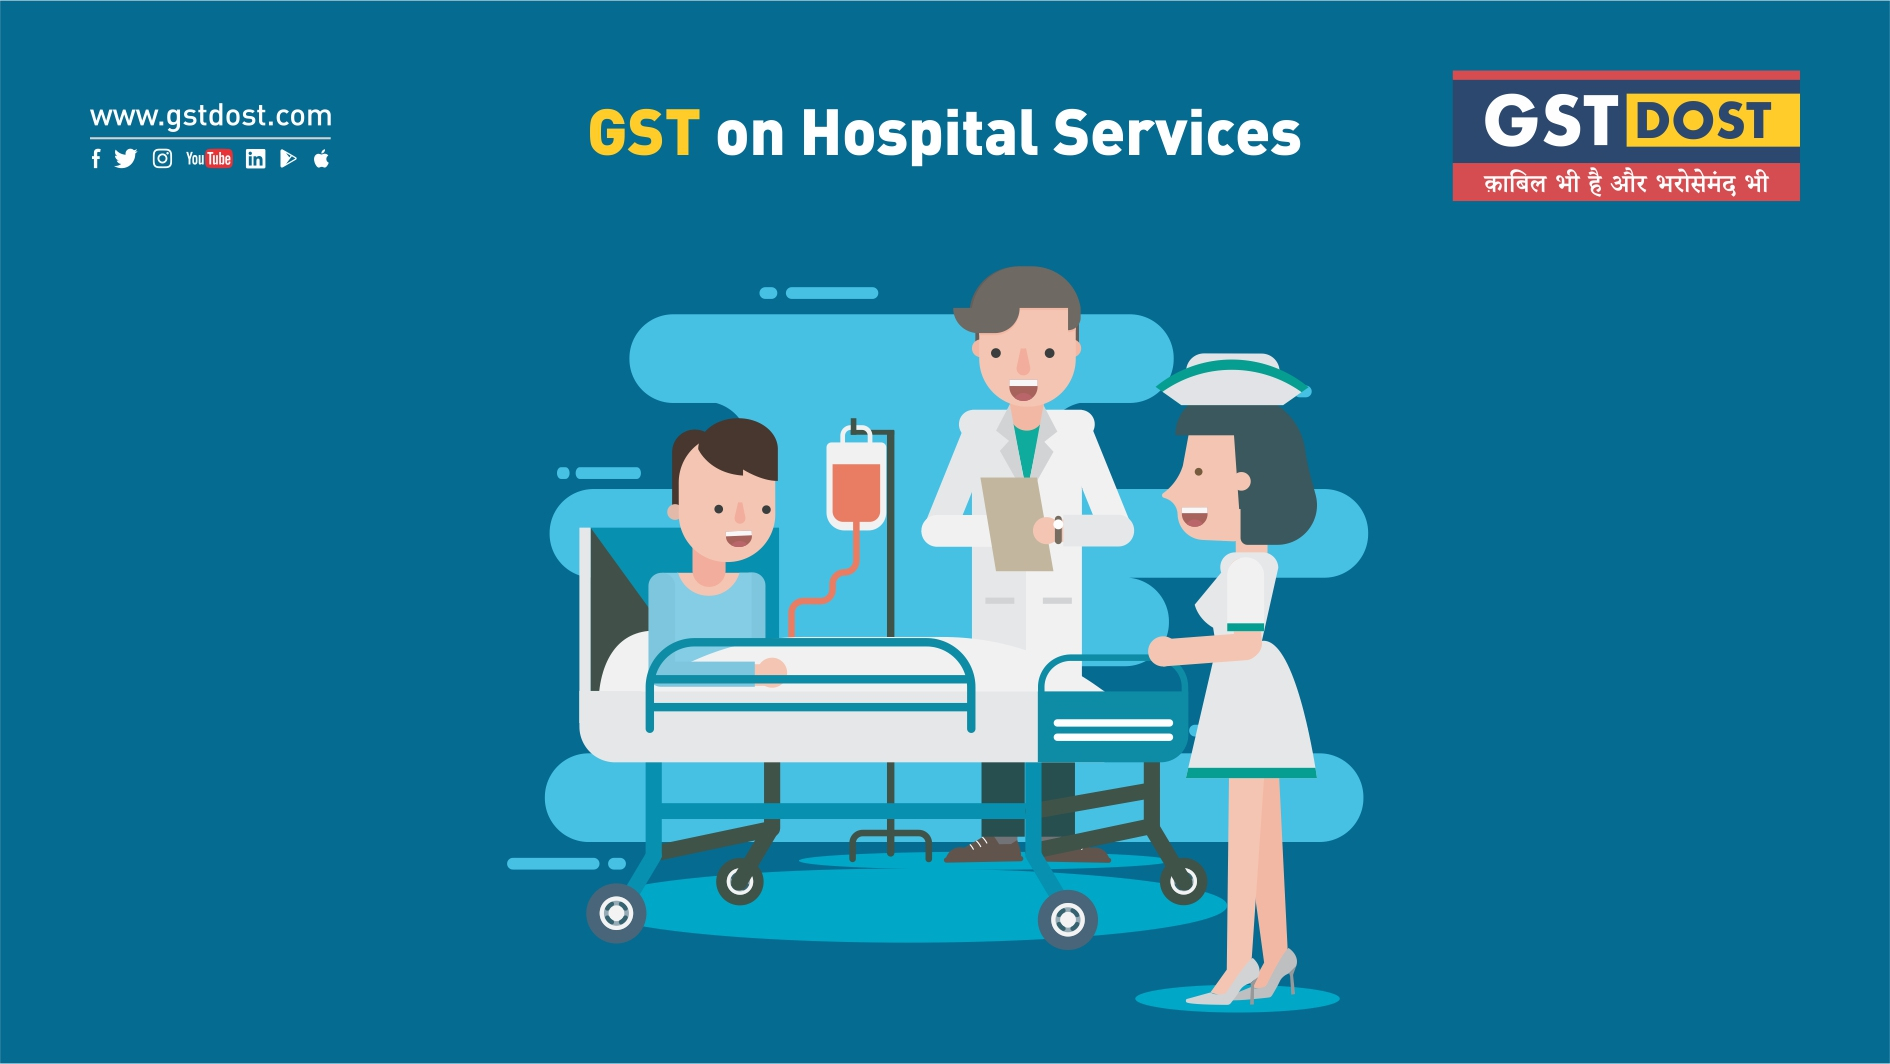 GST on Hospital Services